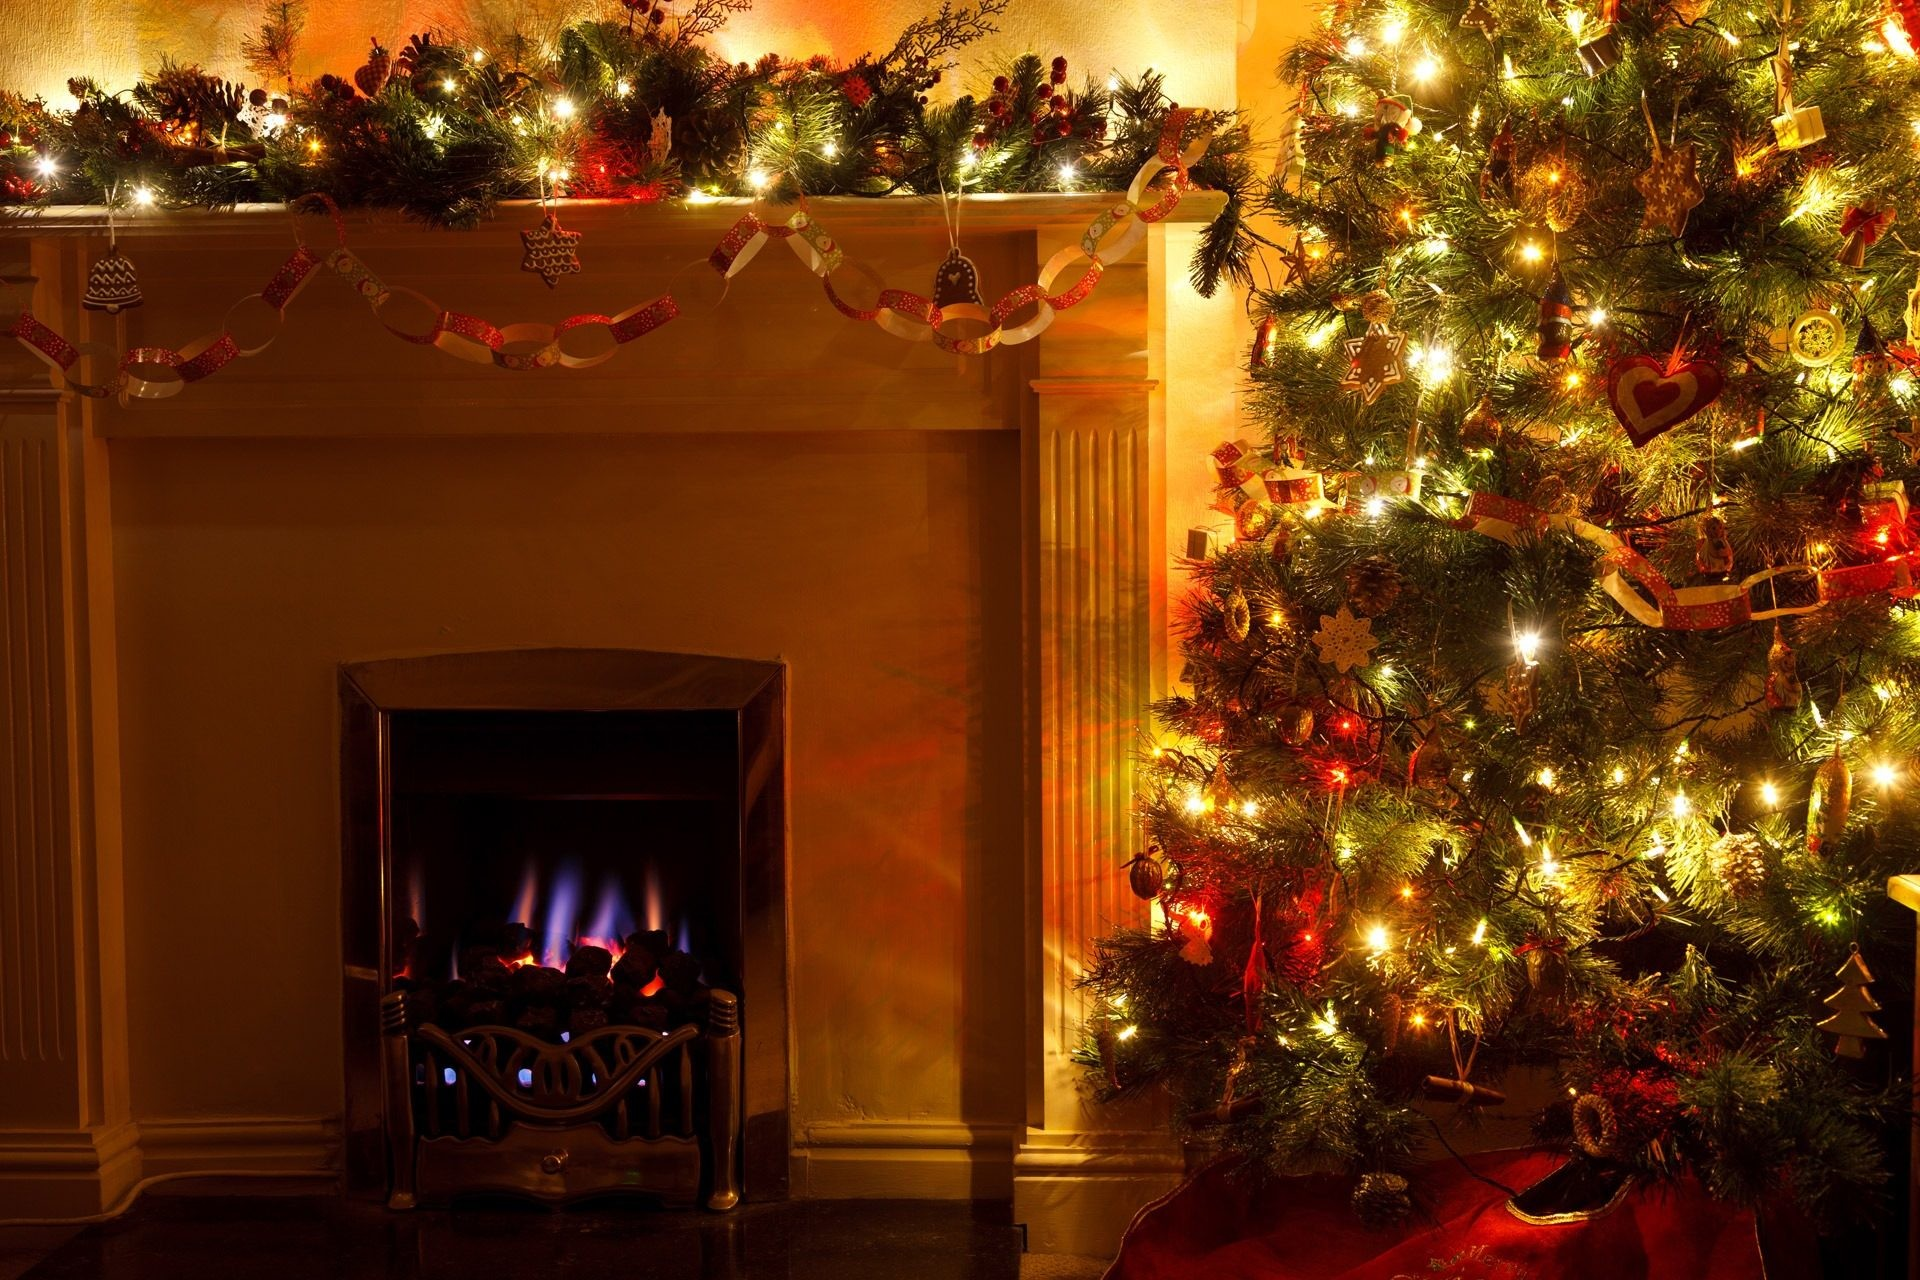 Res: 1920x1280, Christmas tree decoration in front of fireplace